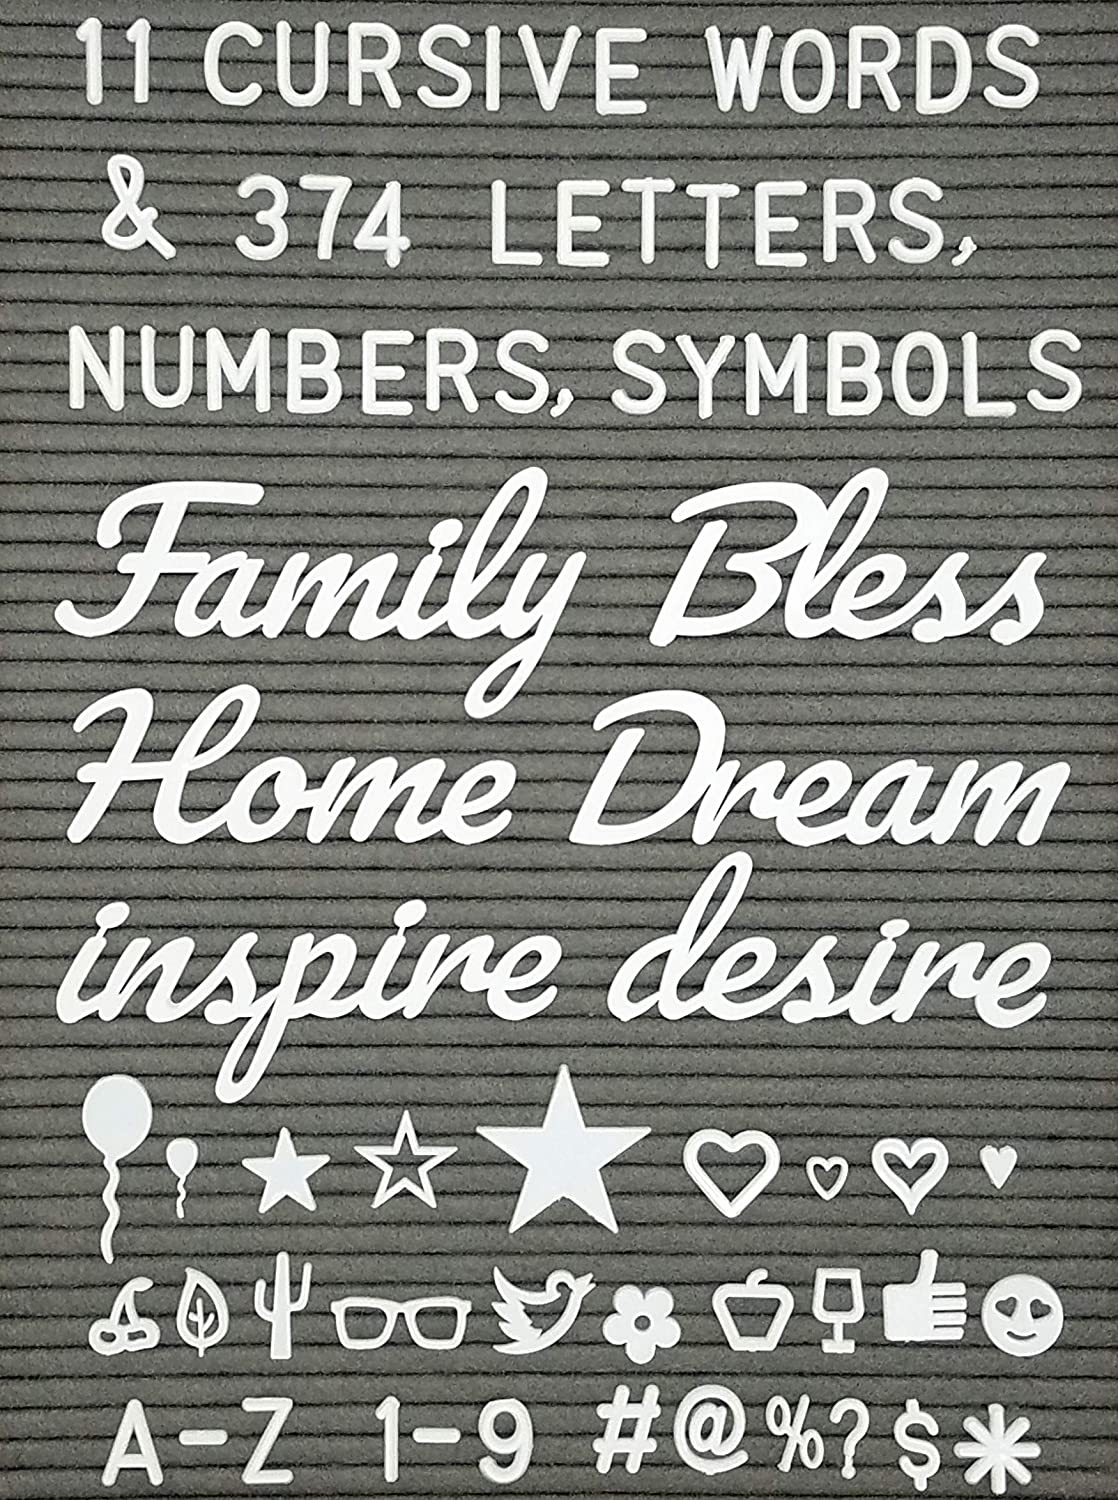 Letter Board Words And Extra Letters Set 11 Cursive Words 374 Letters Numberssymbols Emojis For Felt Board Marquee Sign Word Board Or Sign Board